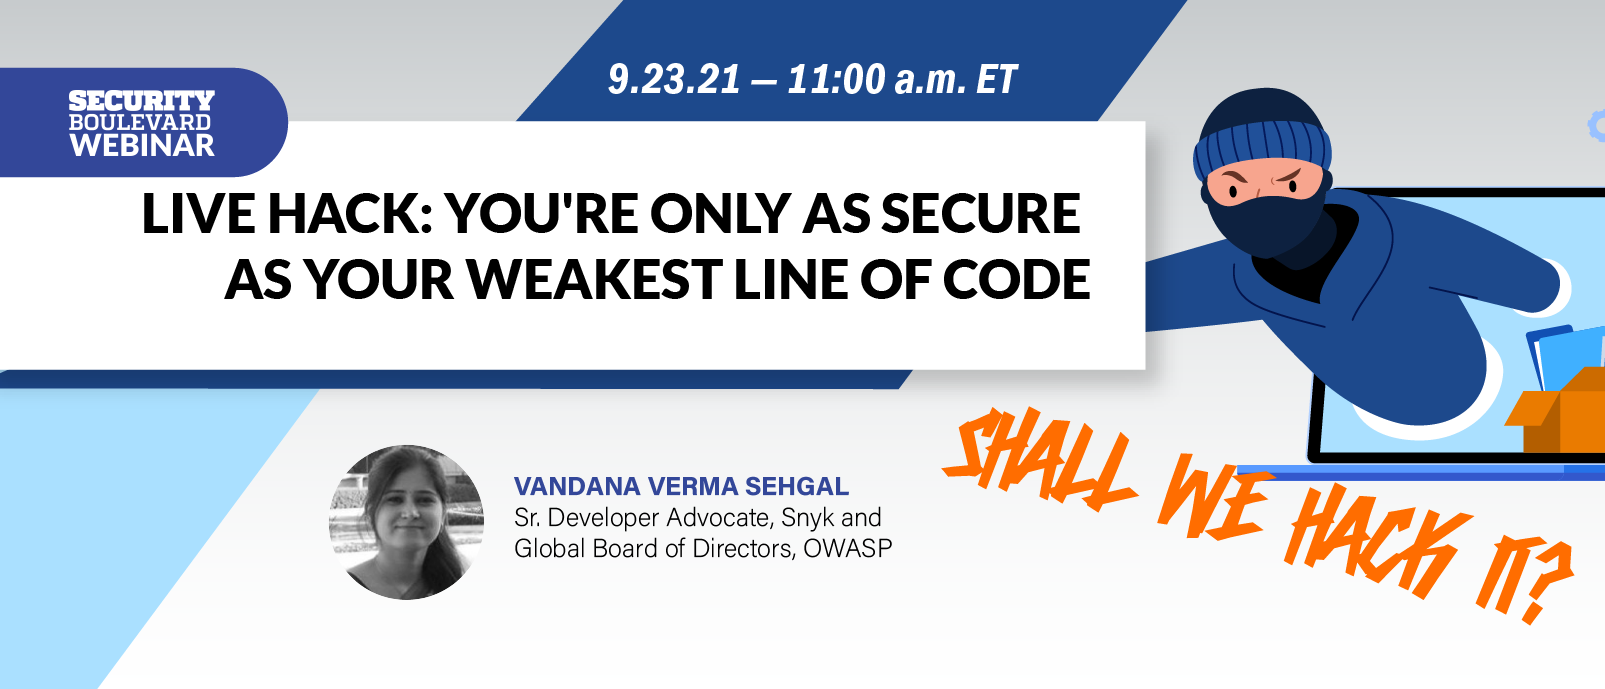 Live Hack: You're Only as Secure as Your Weakest Line of Code